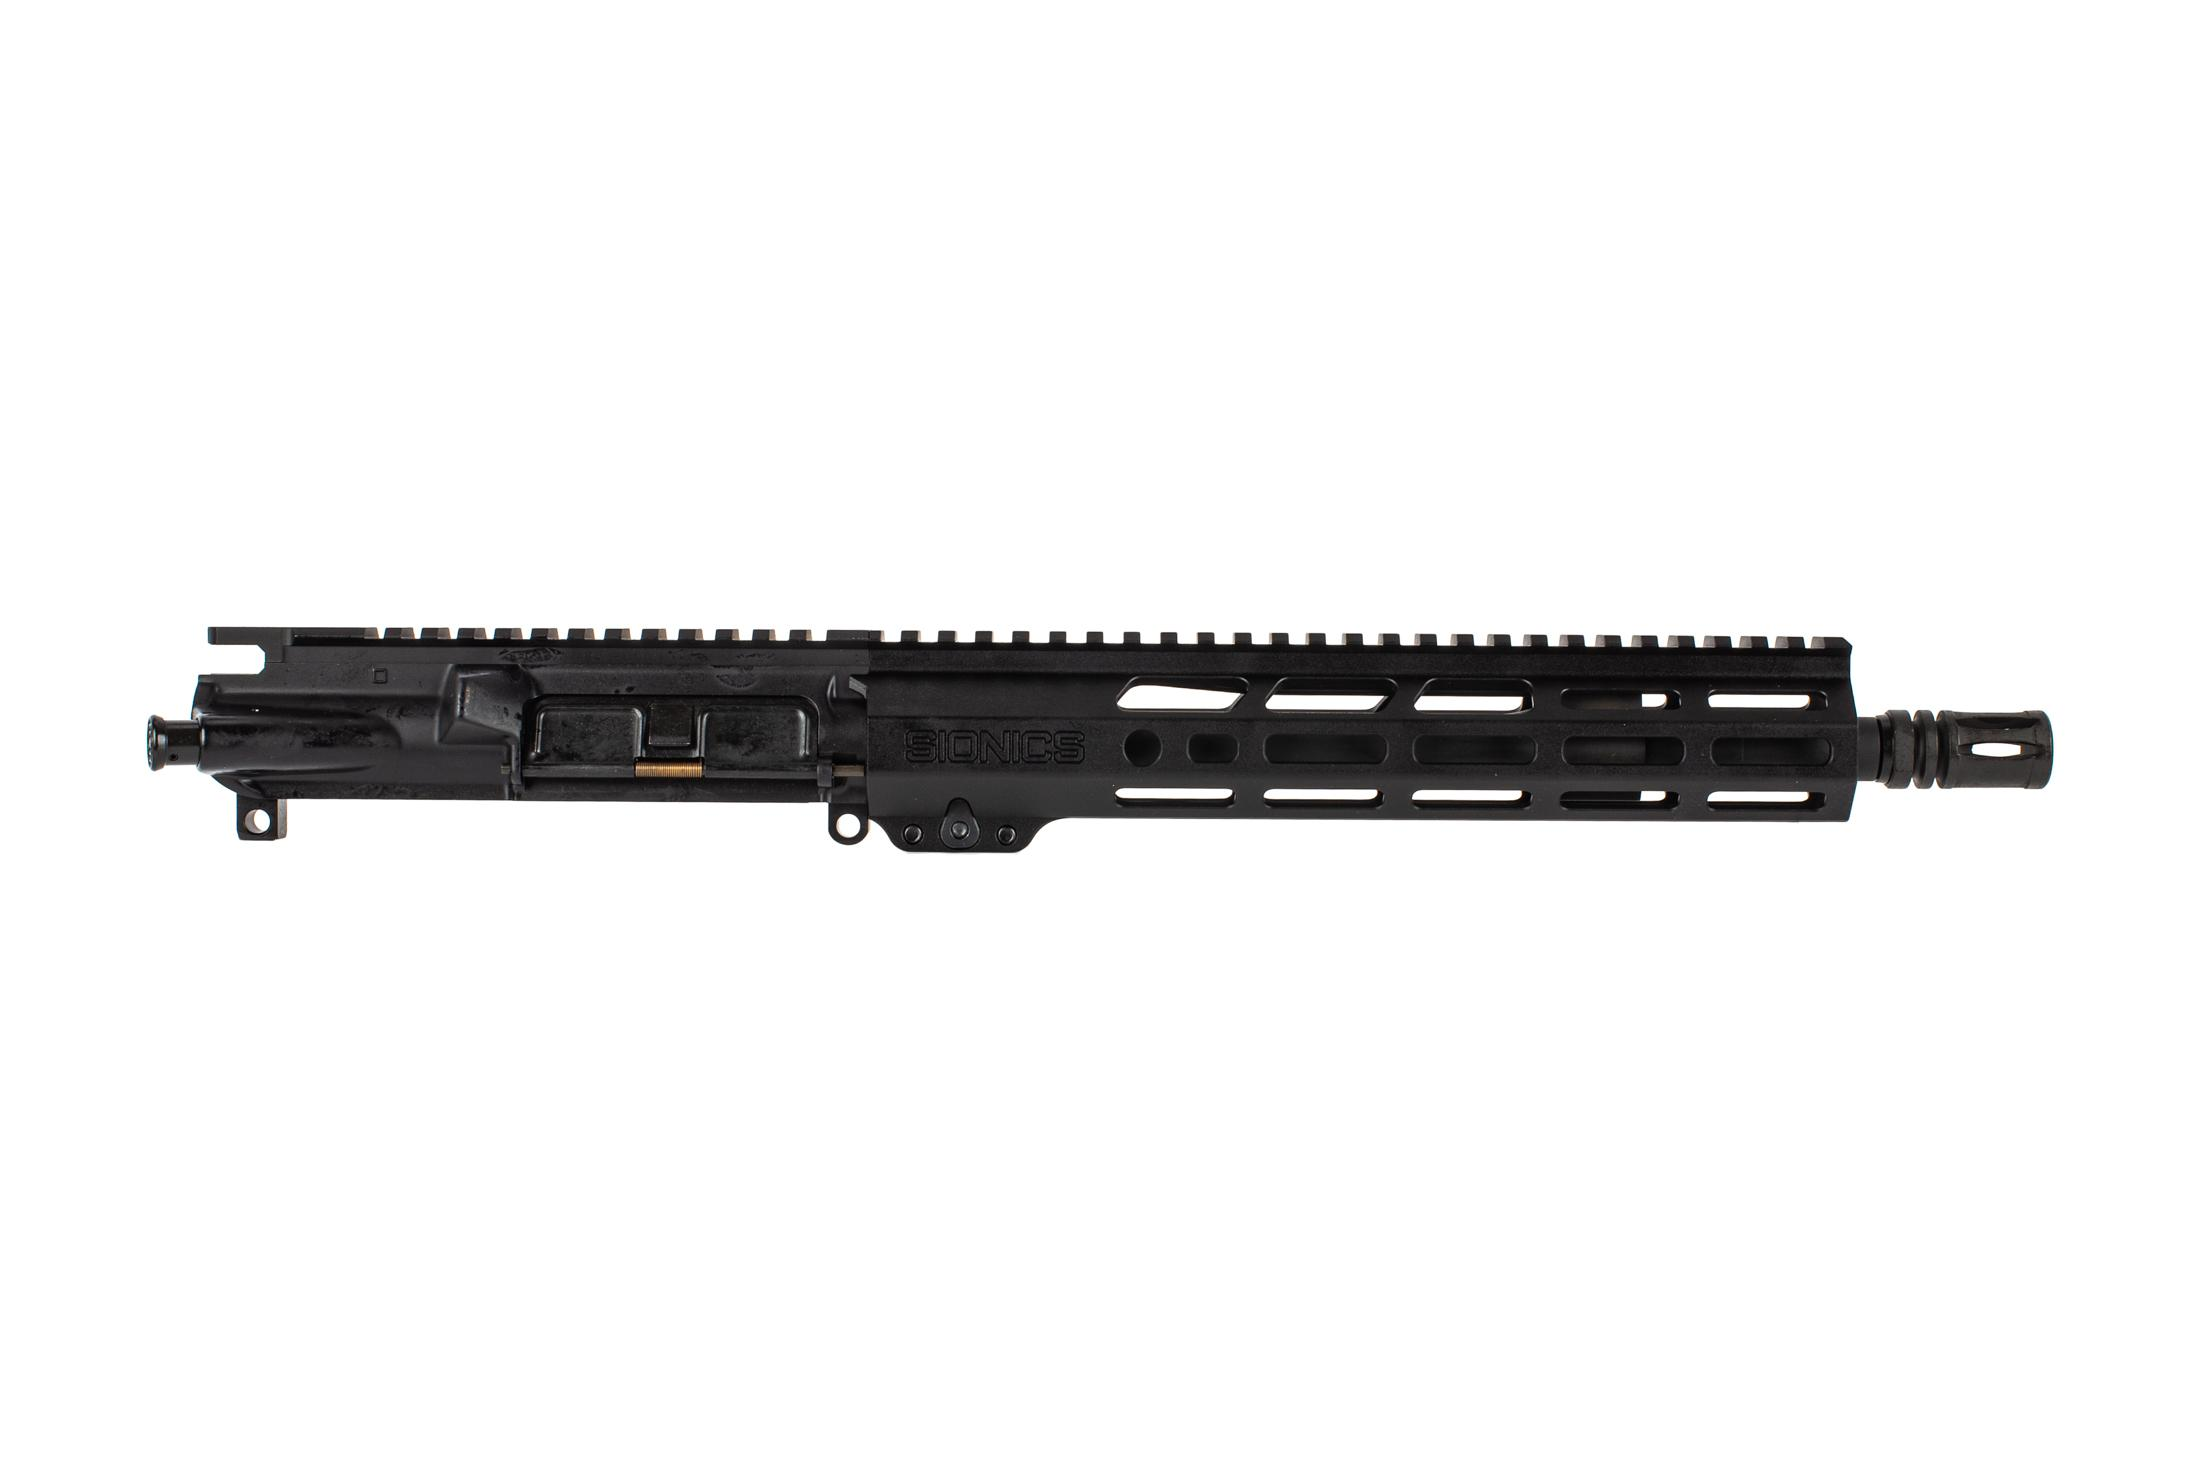 Sionics Weapon Systems Patrol Three barreled ar15 upper receiver is chambered in 5.56